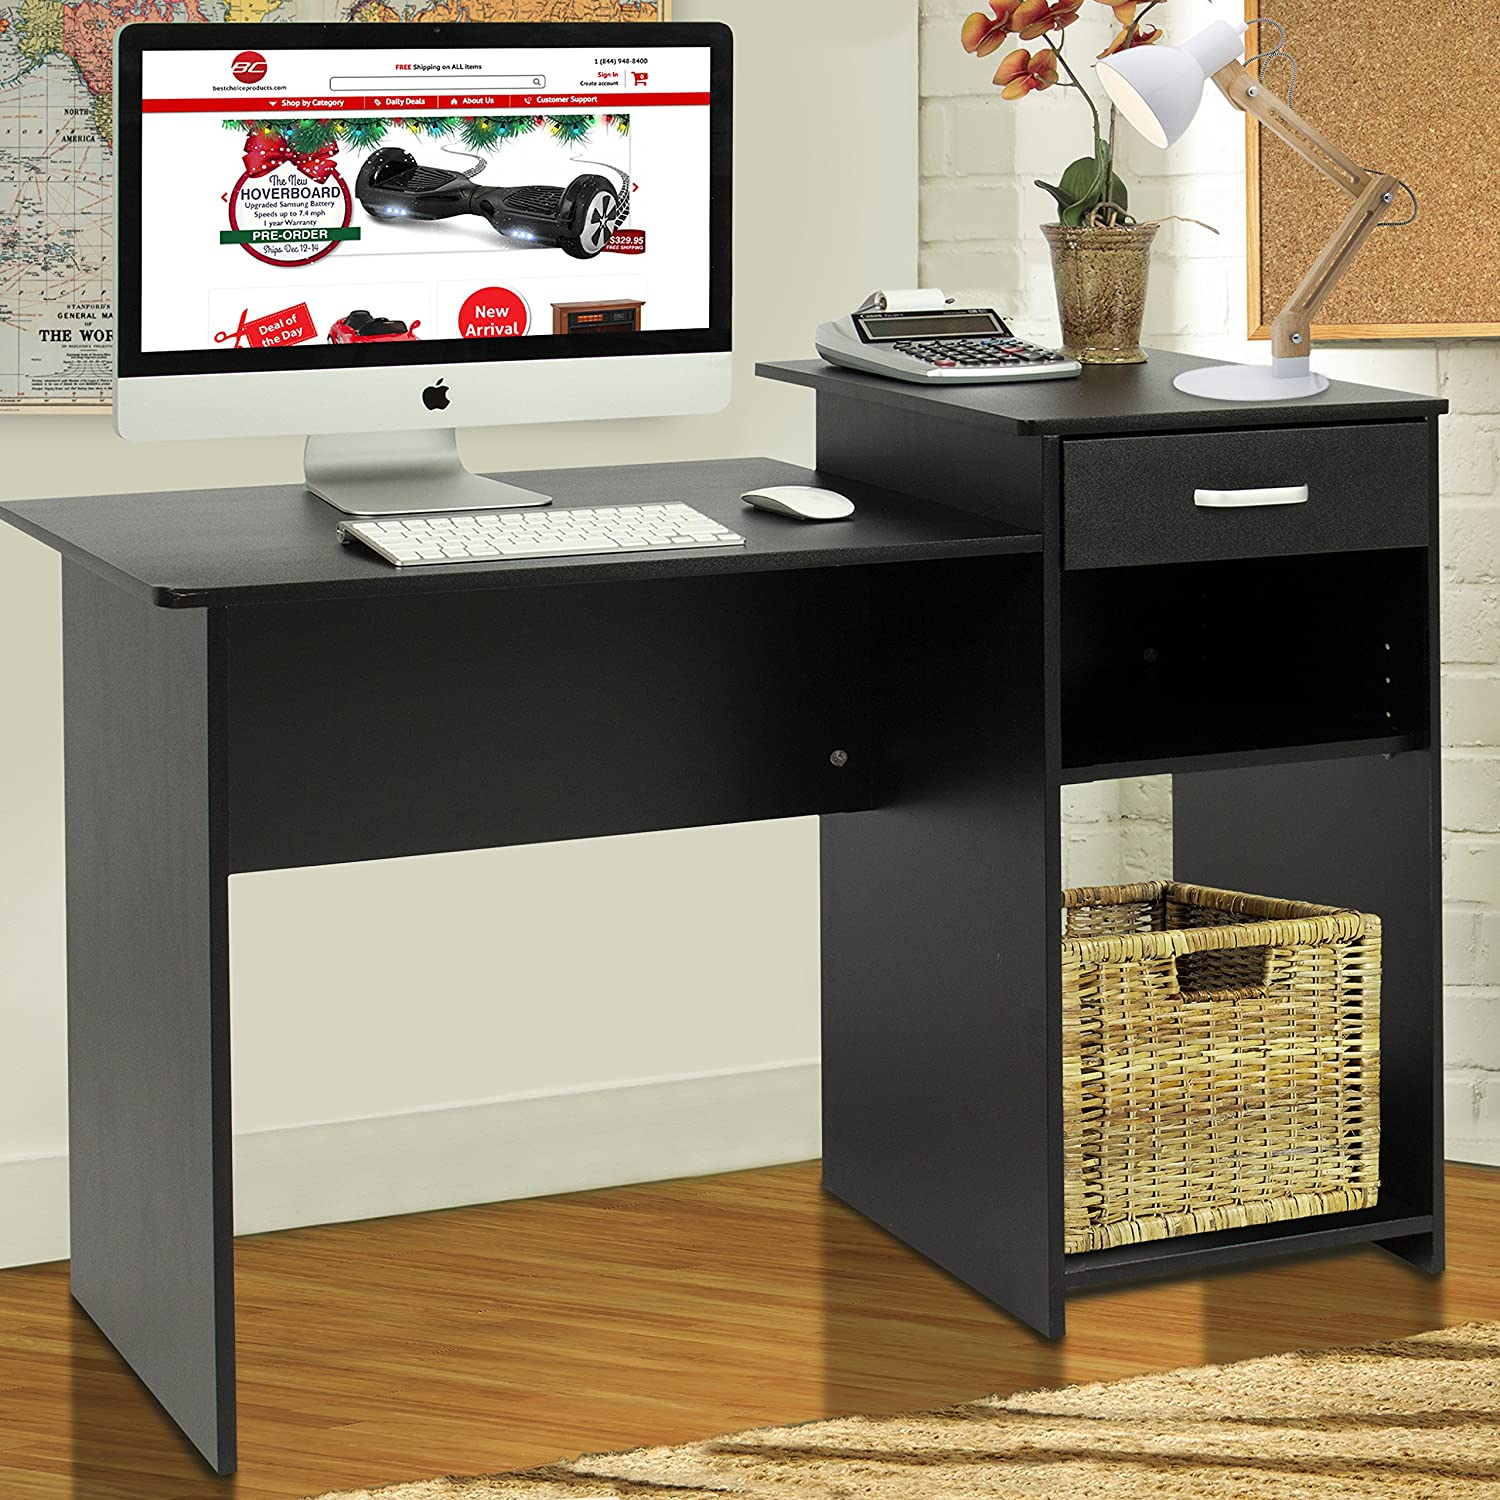 Amazon.com : Best Choice Products Student Computer Desk Home Office Wood  Laptop Table Study Workstation Dorm Bk : Office Products